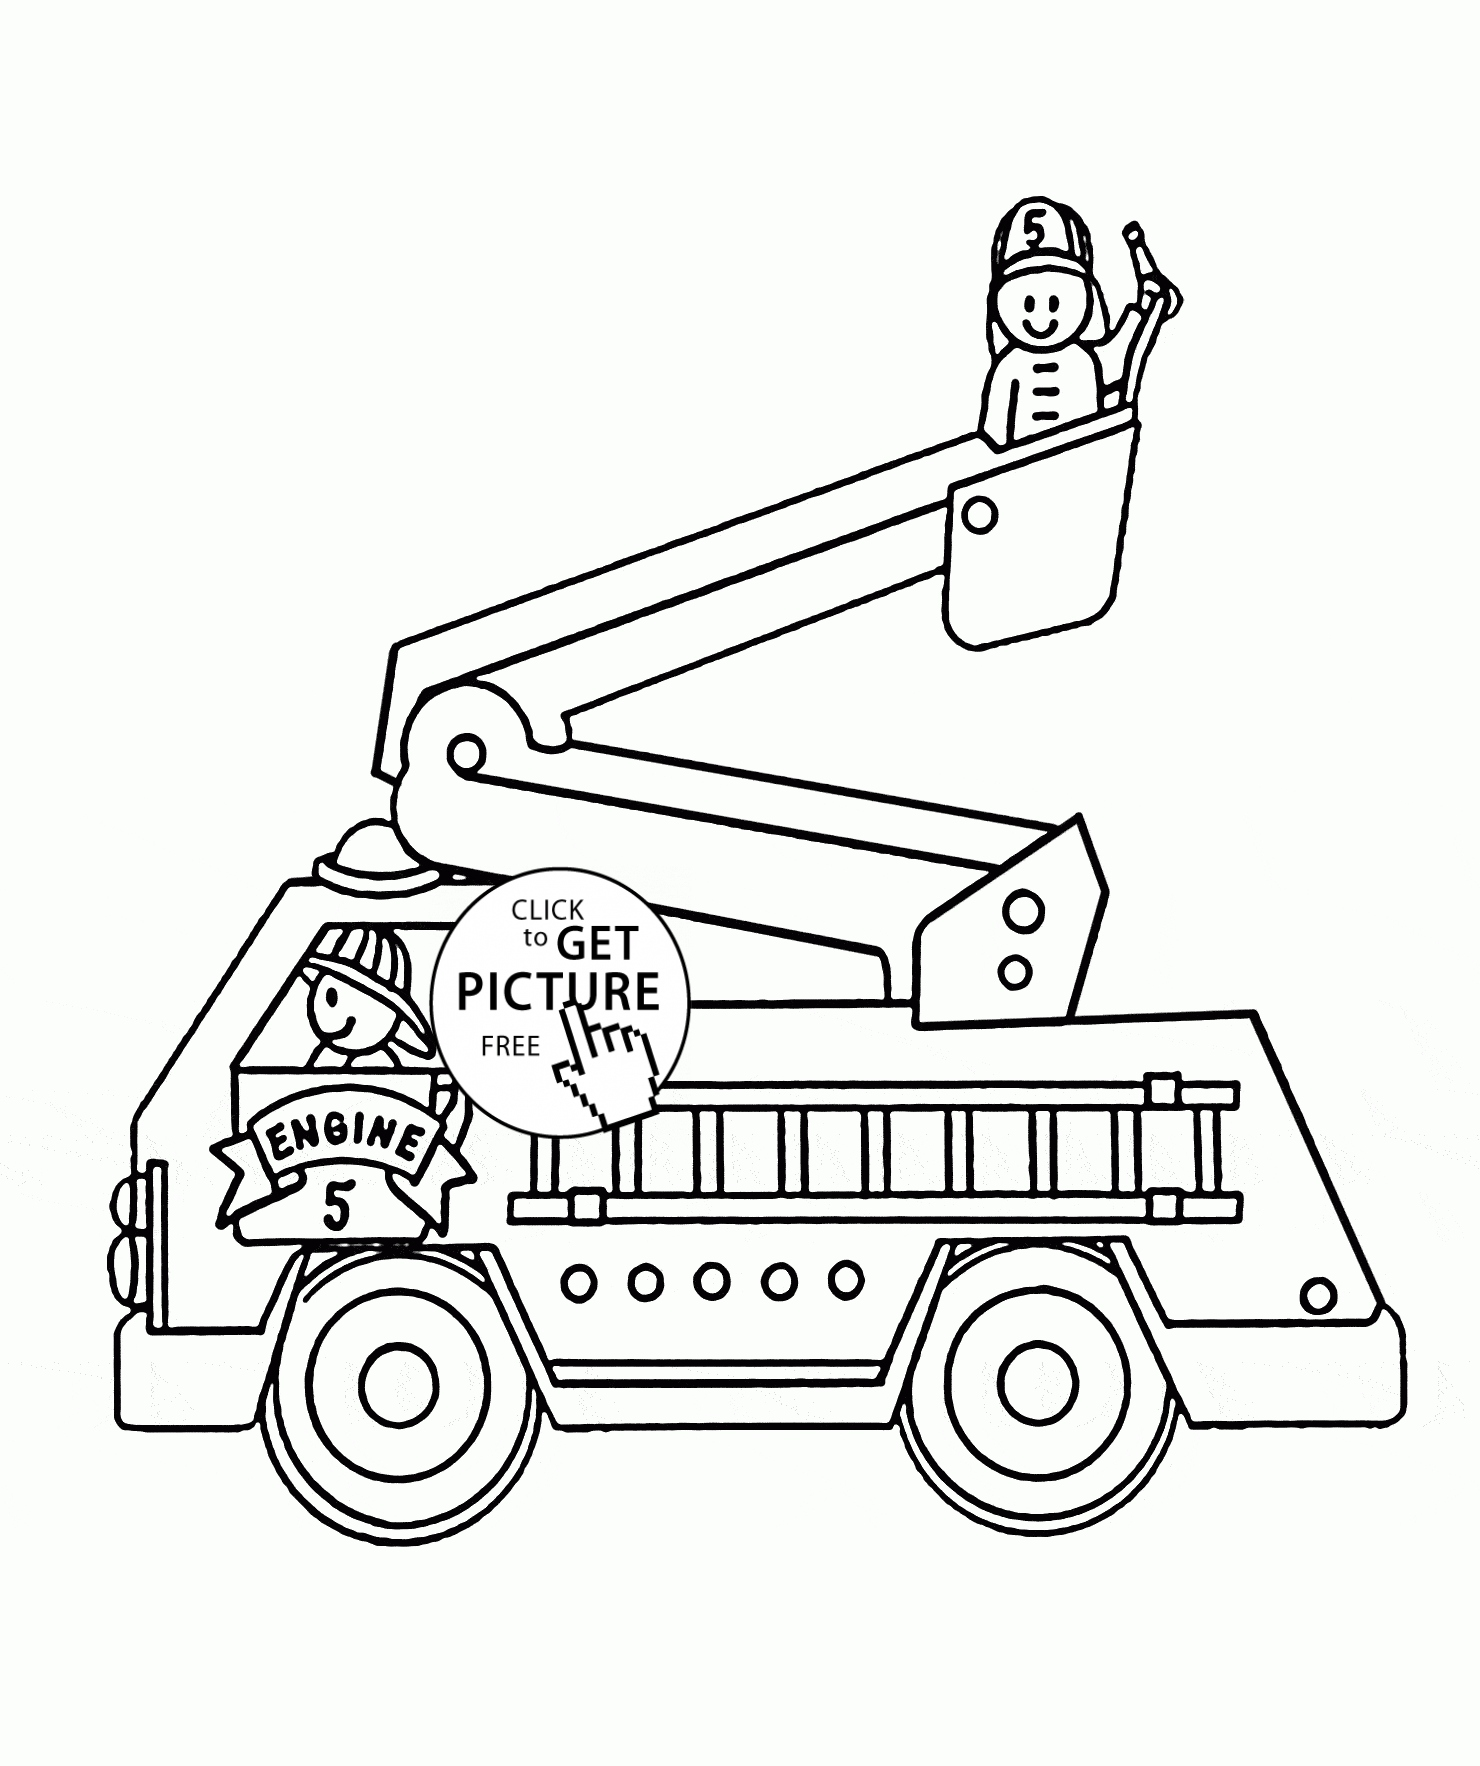 Fire Truck Coloring Pages Pdf At Getdrawings Com Free For Personal